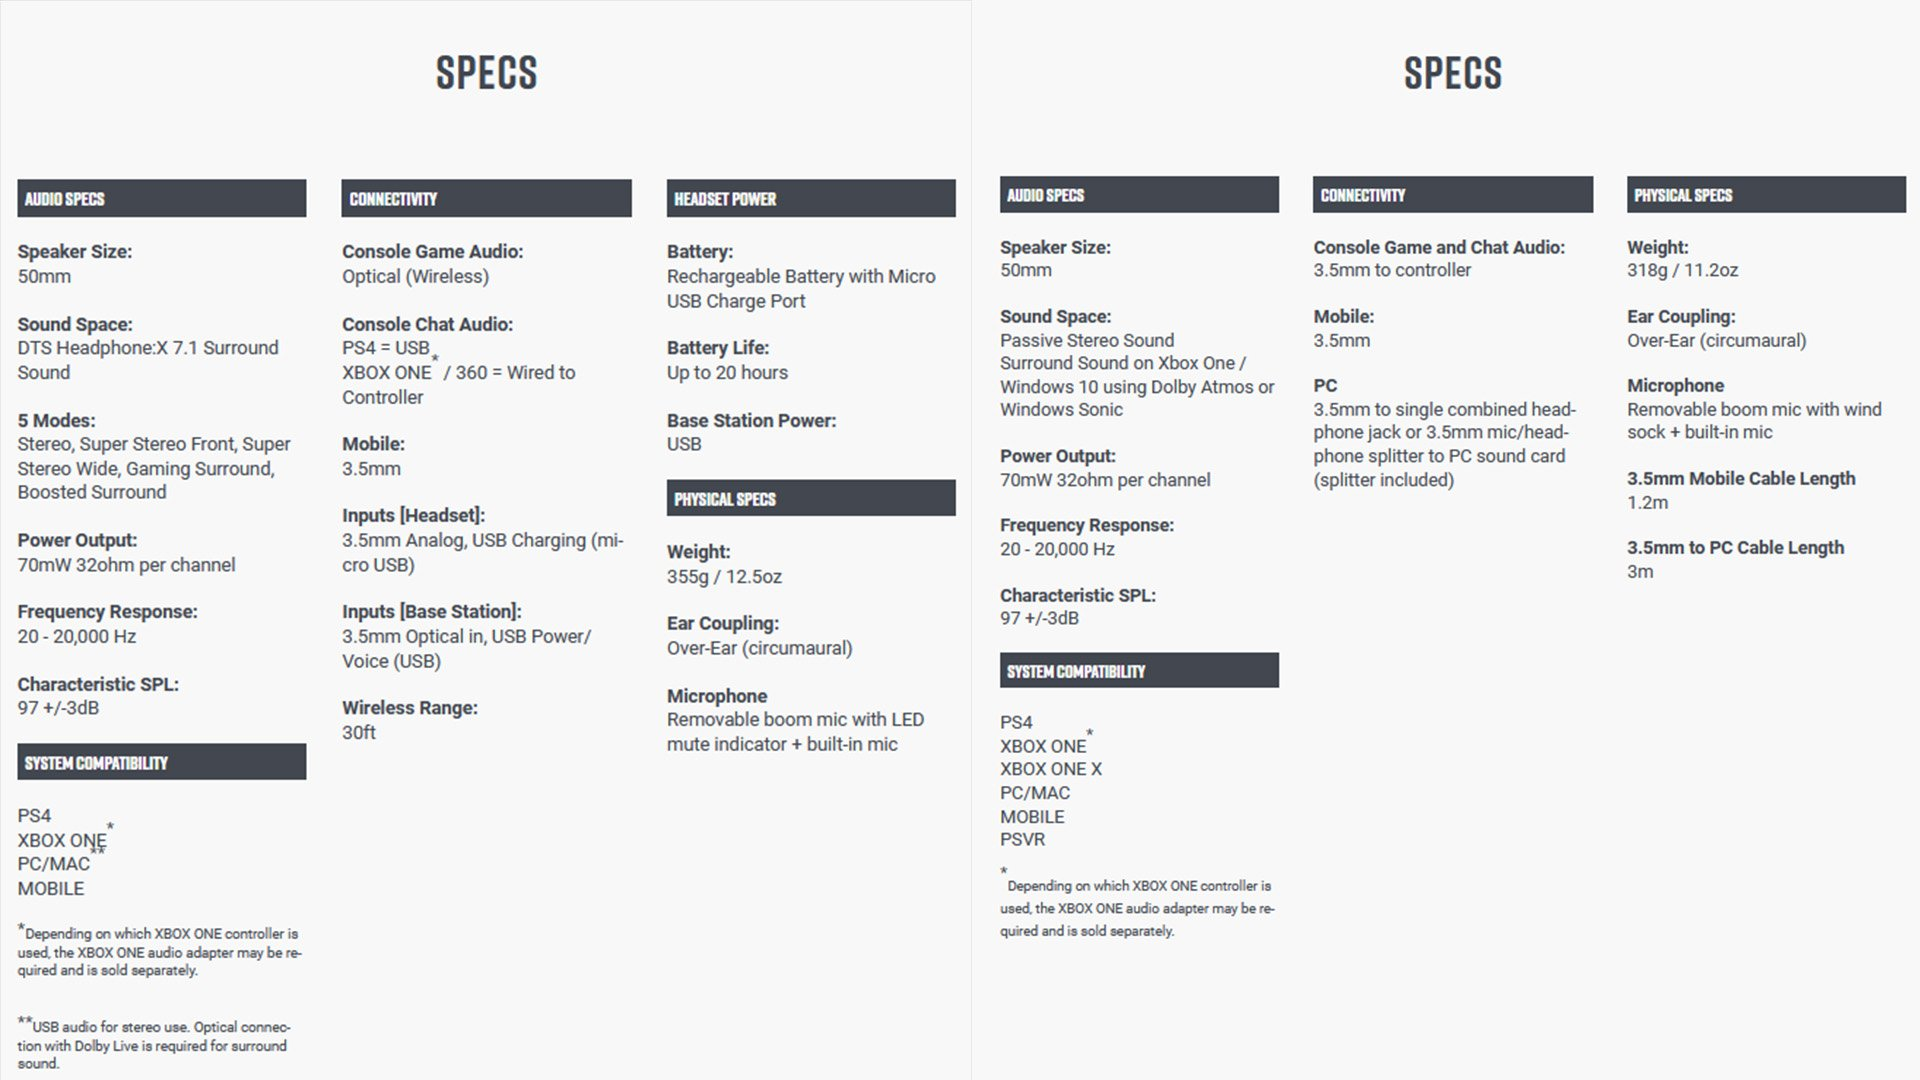 The LS41 (left) and LS25 (right) specs side by side